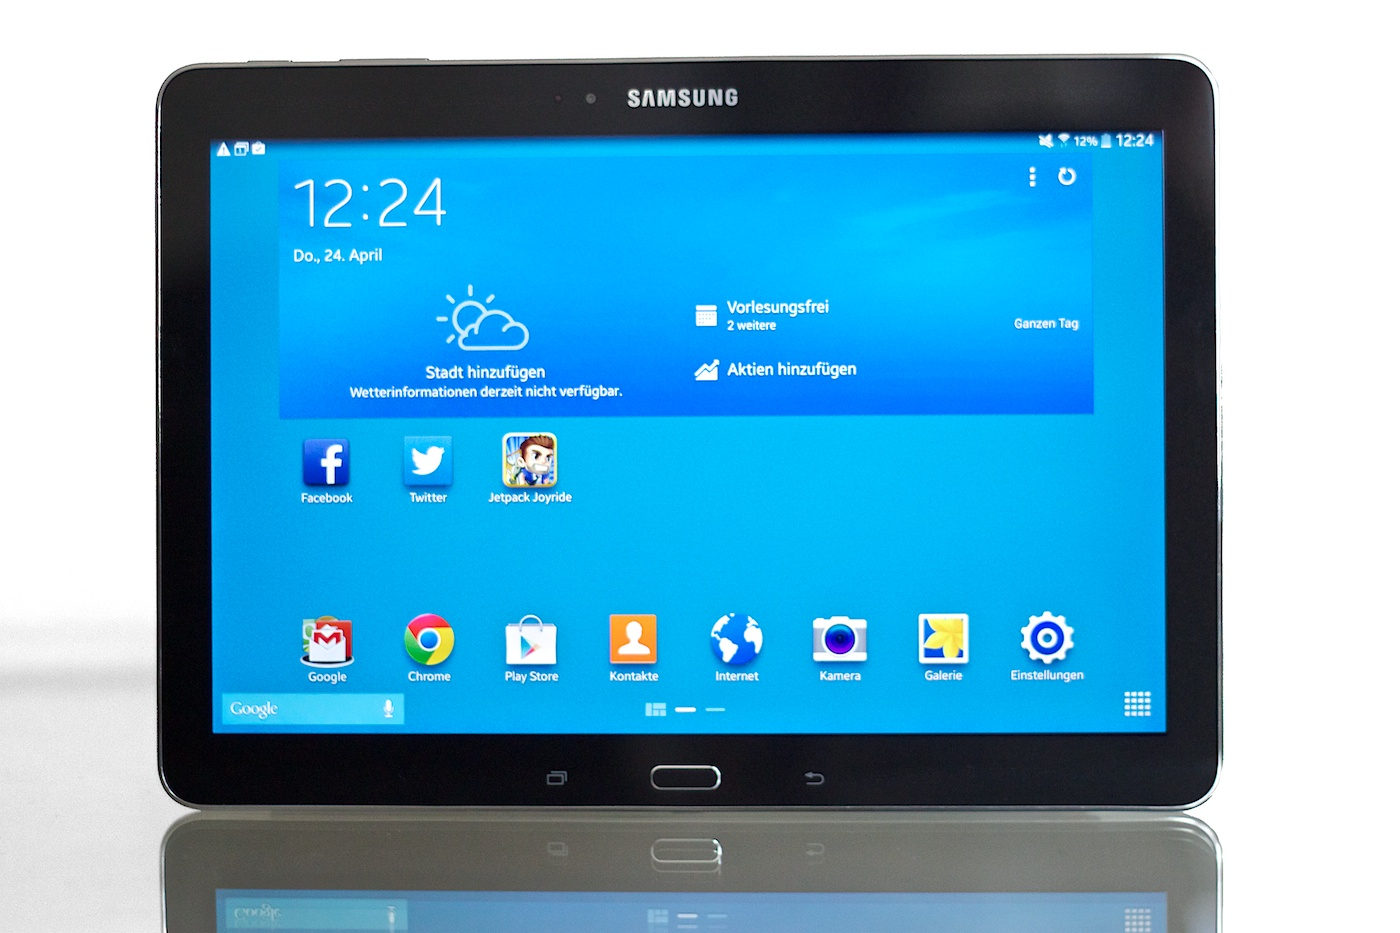 samsung galaxy tab pro android tablet mit 10 1 display im. Black Bedroom Furniture Sets. Home Design Ideas